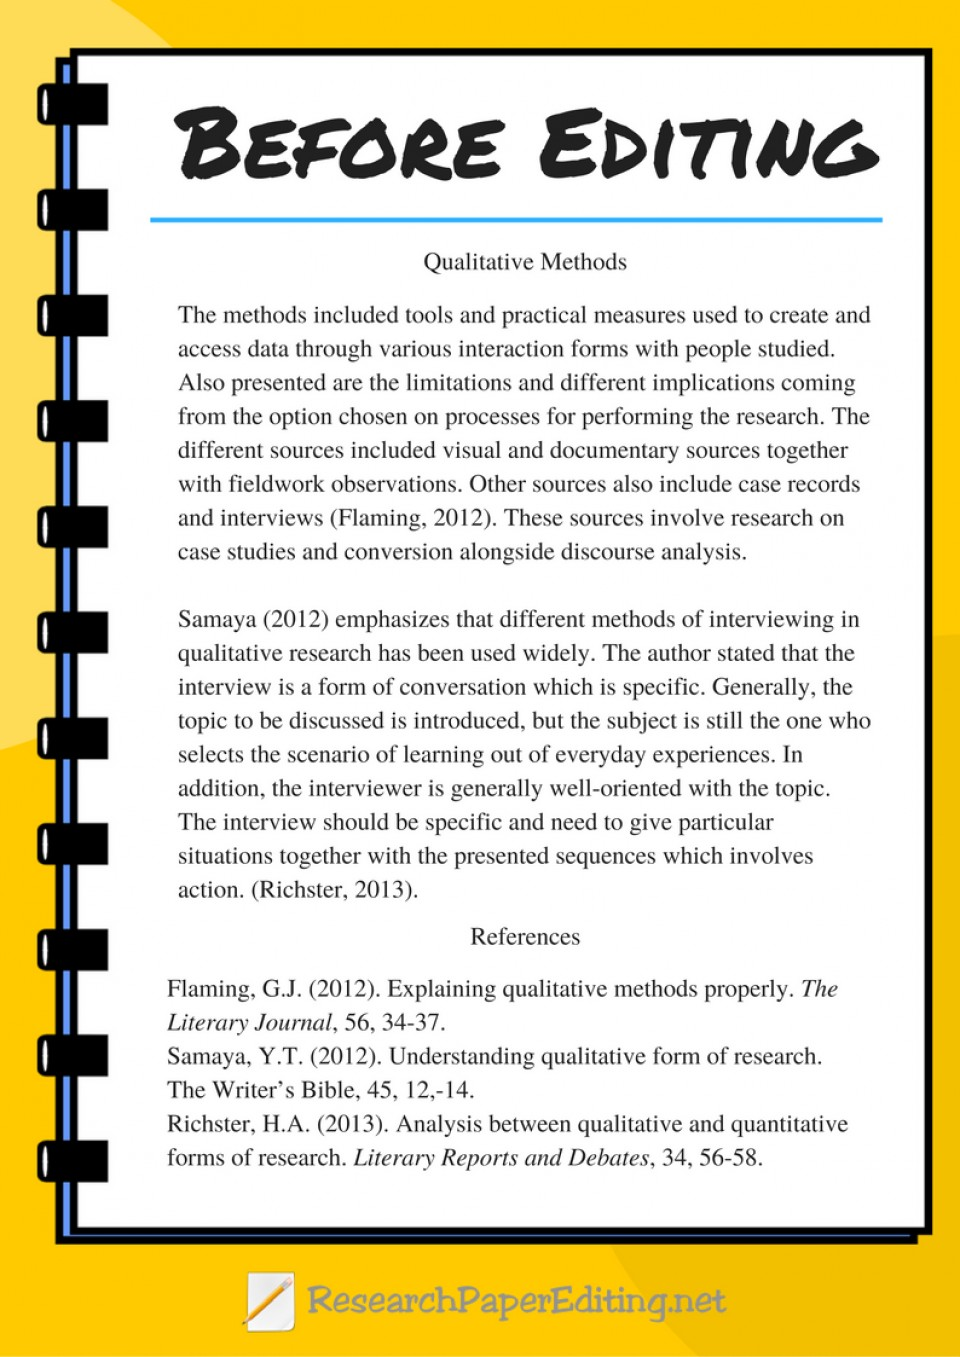 005 Research Paper 8atplxz Best Editing Software Free Download Writing Services In India 960